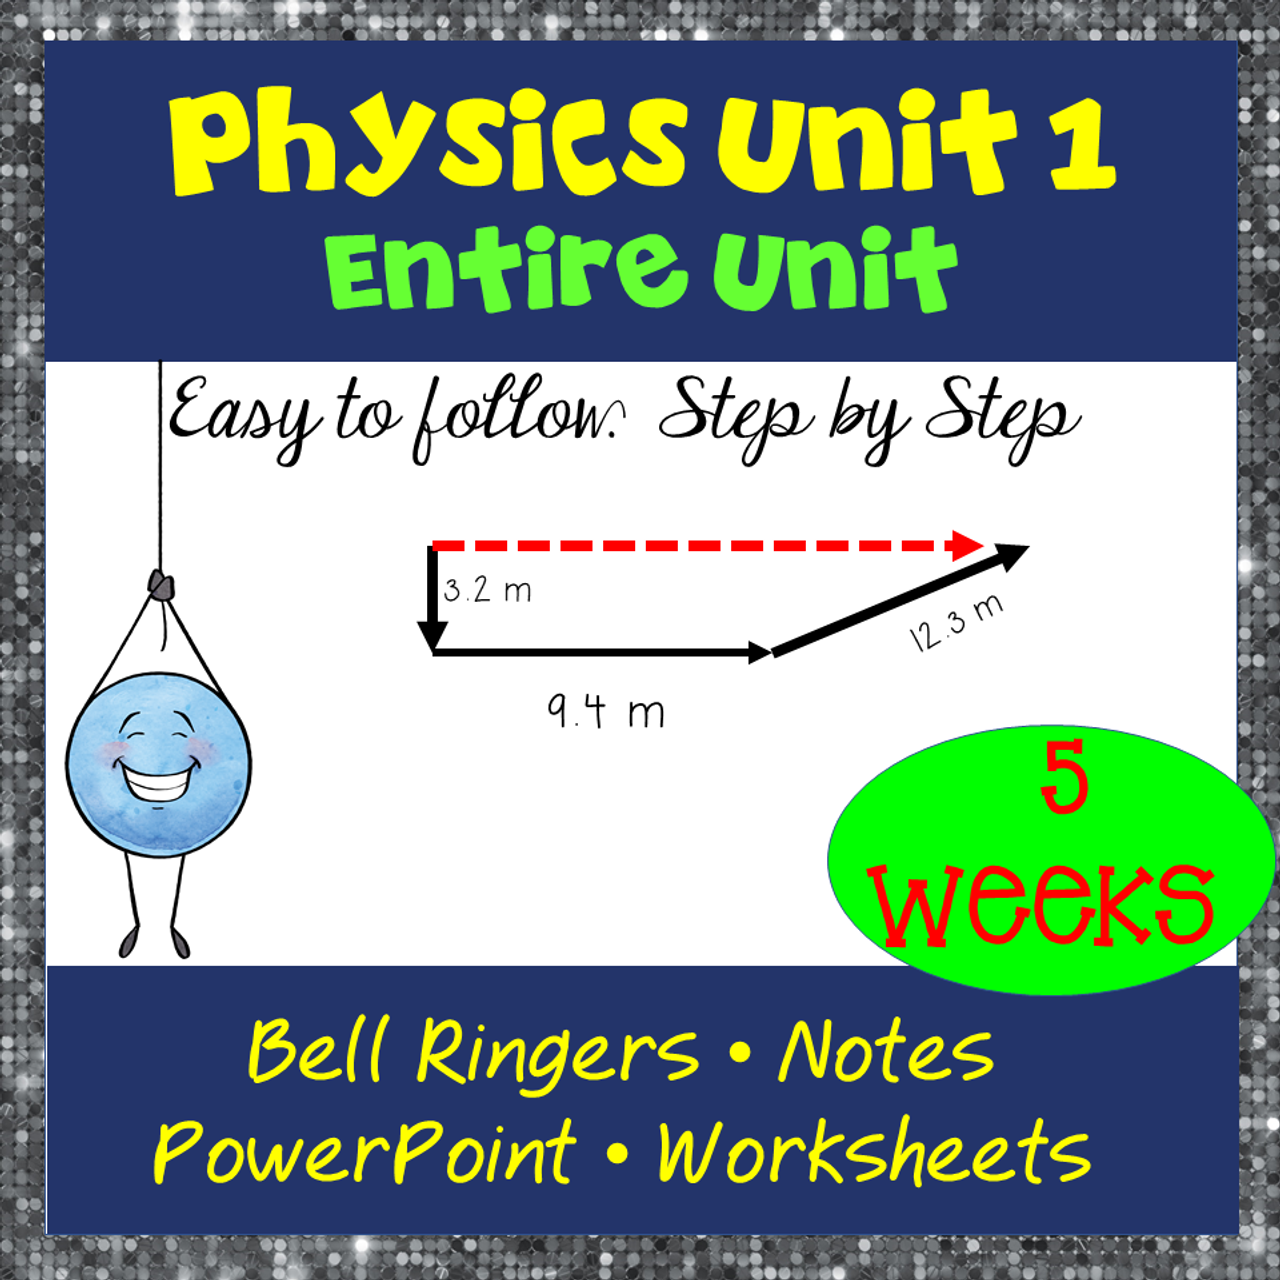 Physics Unit 1 Graphing & 1 D Kinematics: The total bundle!